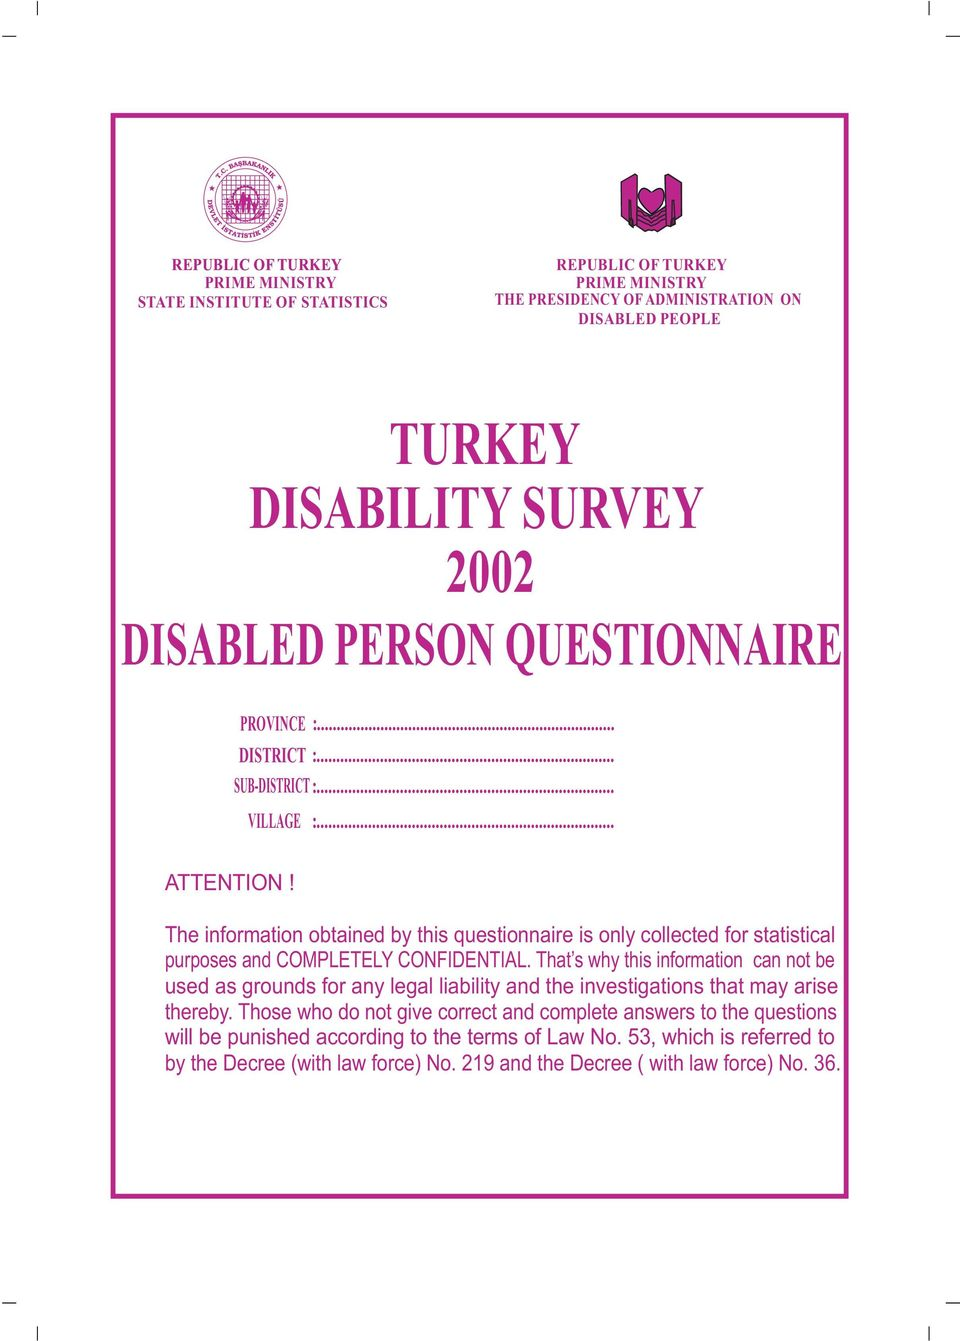 The information obtained by this questionnaire is only collected for statistical purposes and COMPLETELY CONFIDENTIAL.